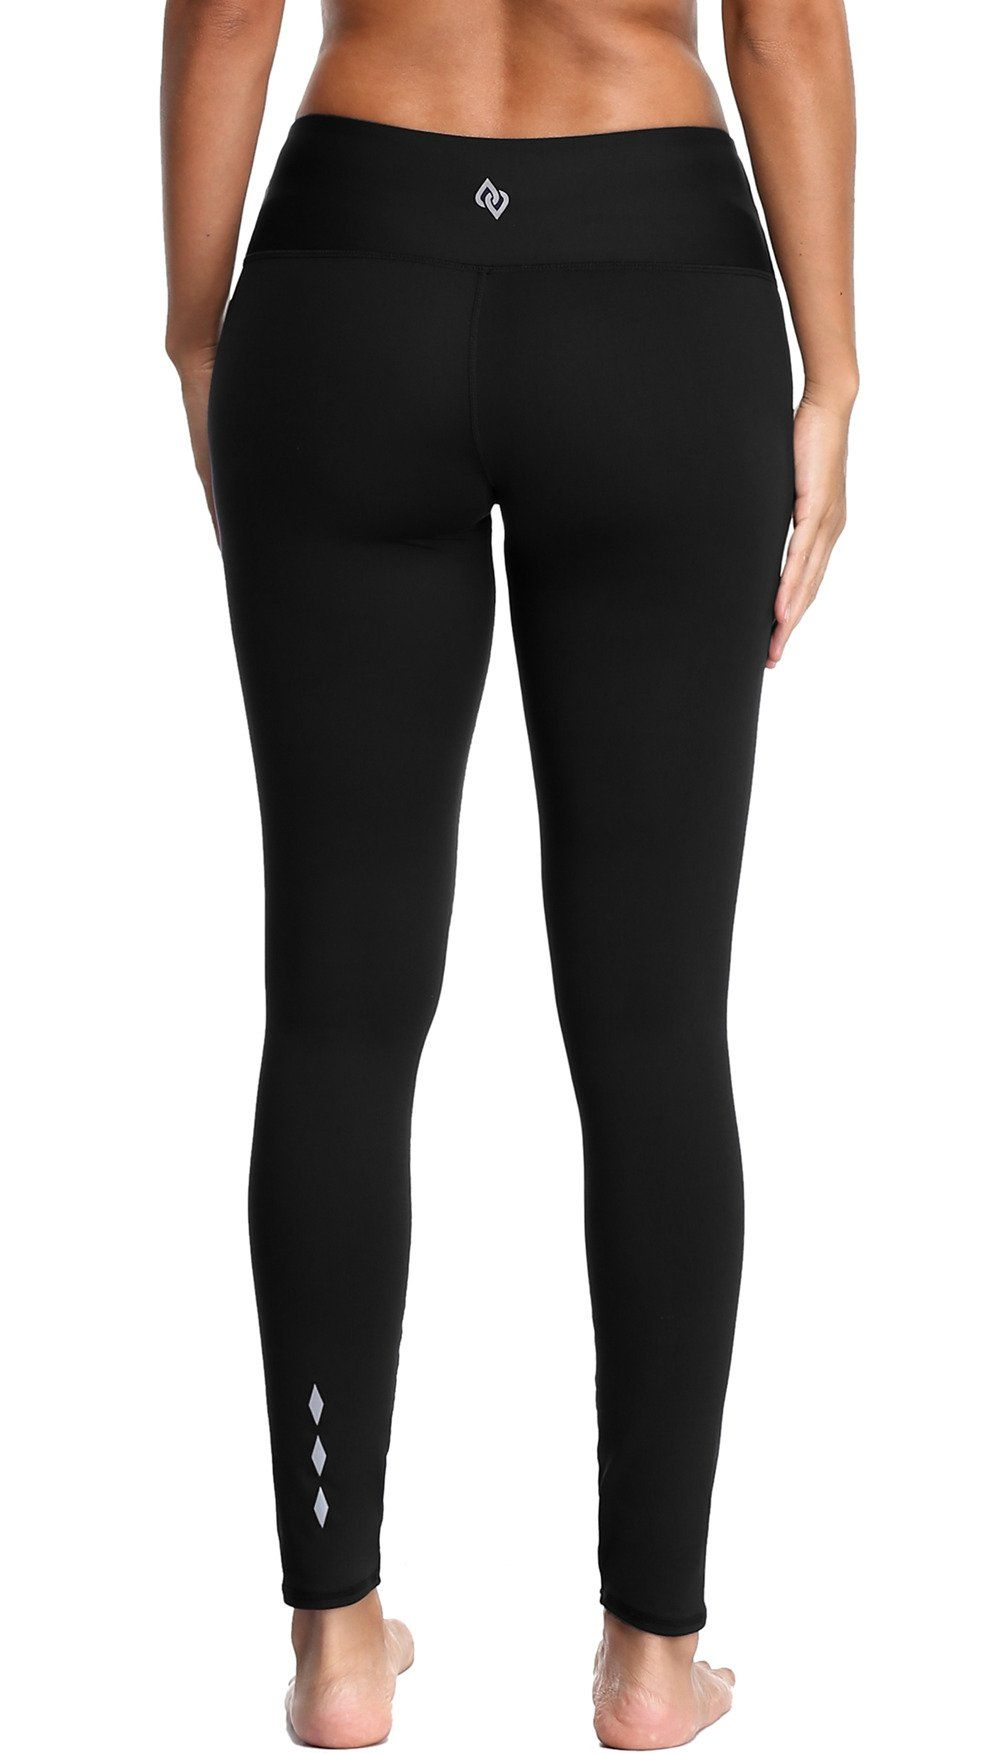 c6c0d5f4056a3 ALove Womens Workout Running 4 Way Stretch Yoga Capris Leggings Tights  Black Large. Non see